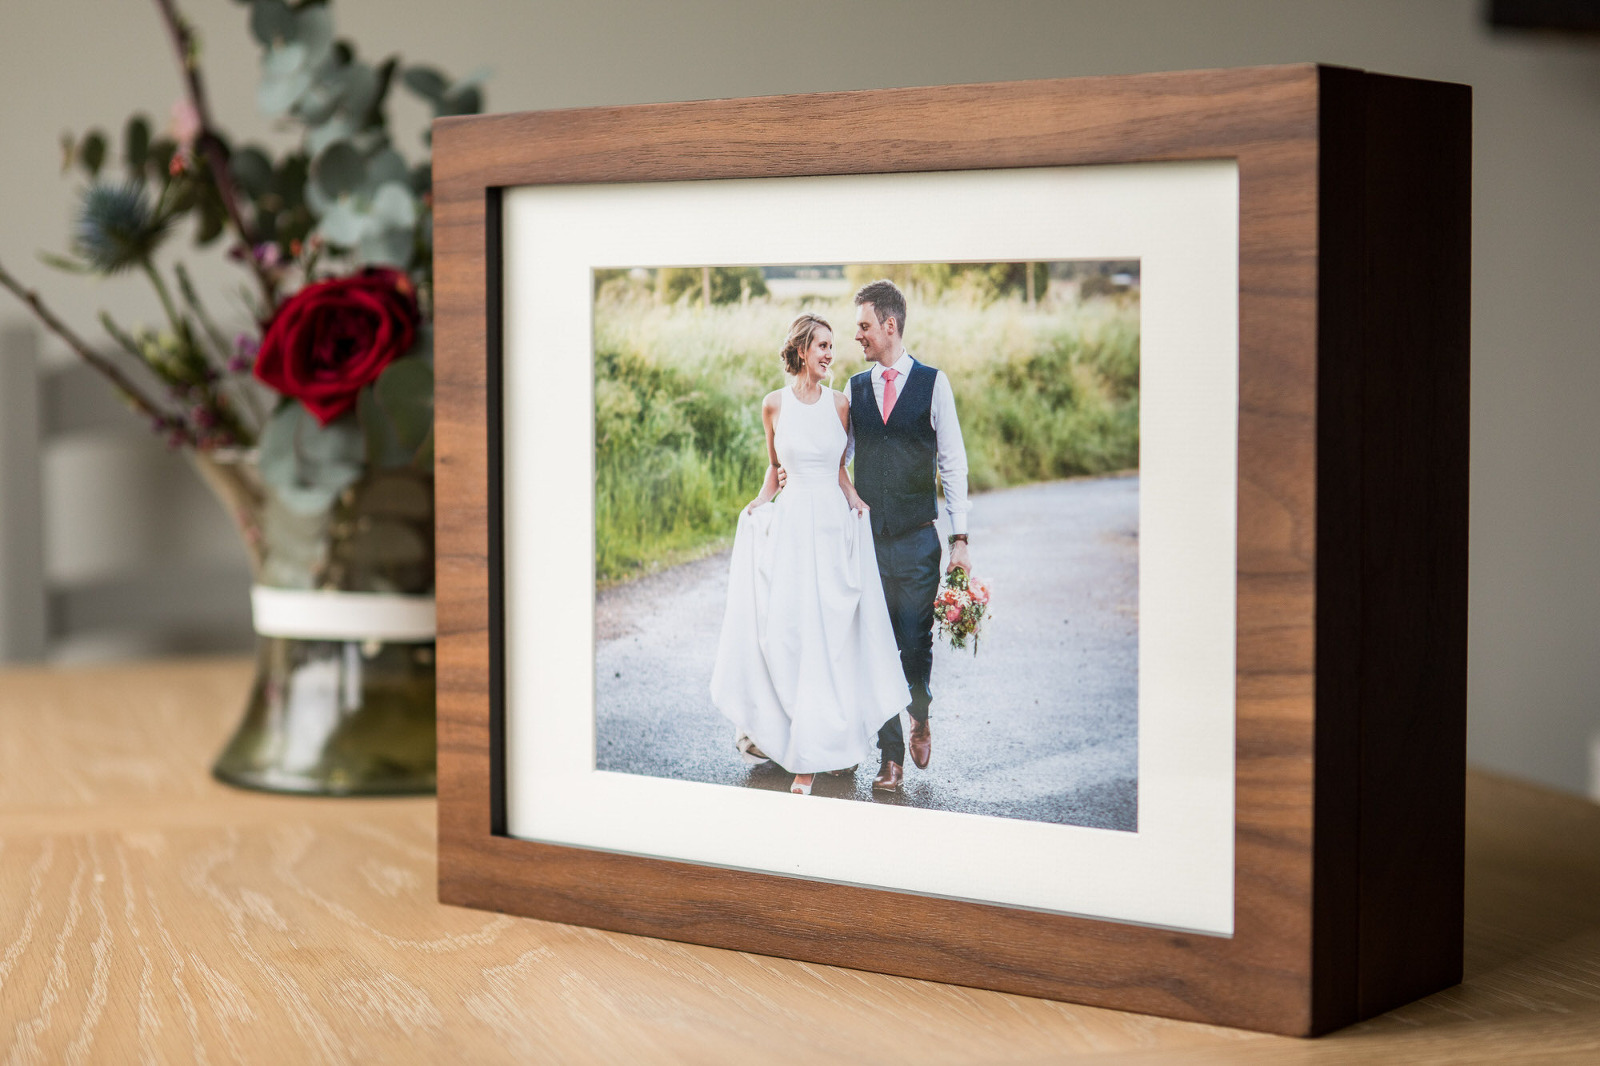 Wedding Photography package - Wooden USB Box